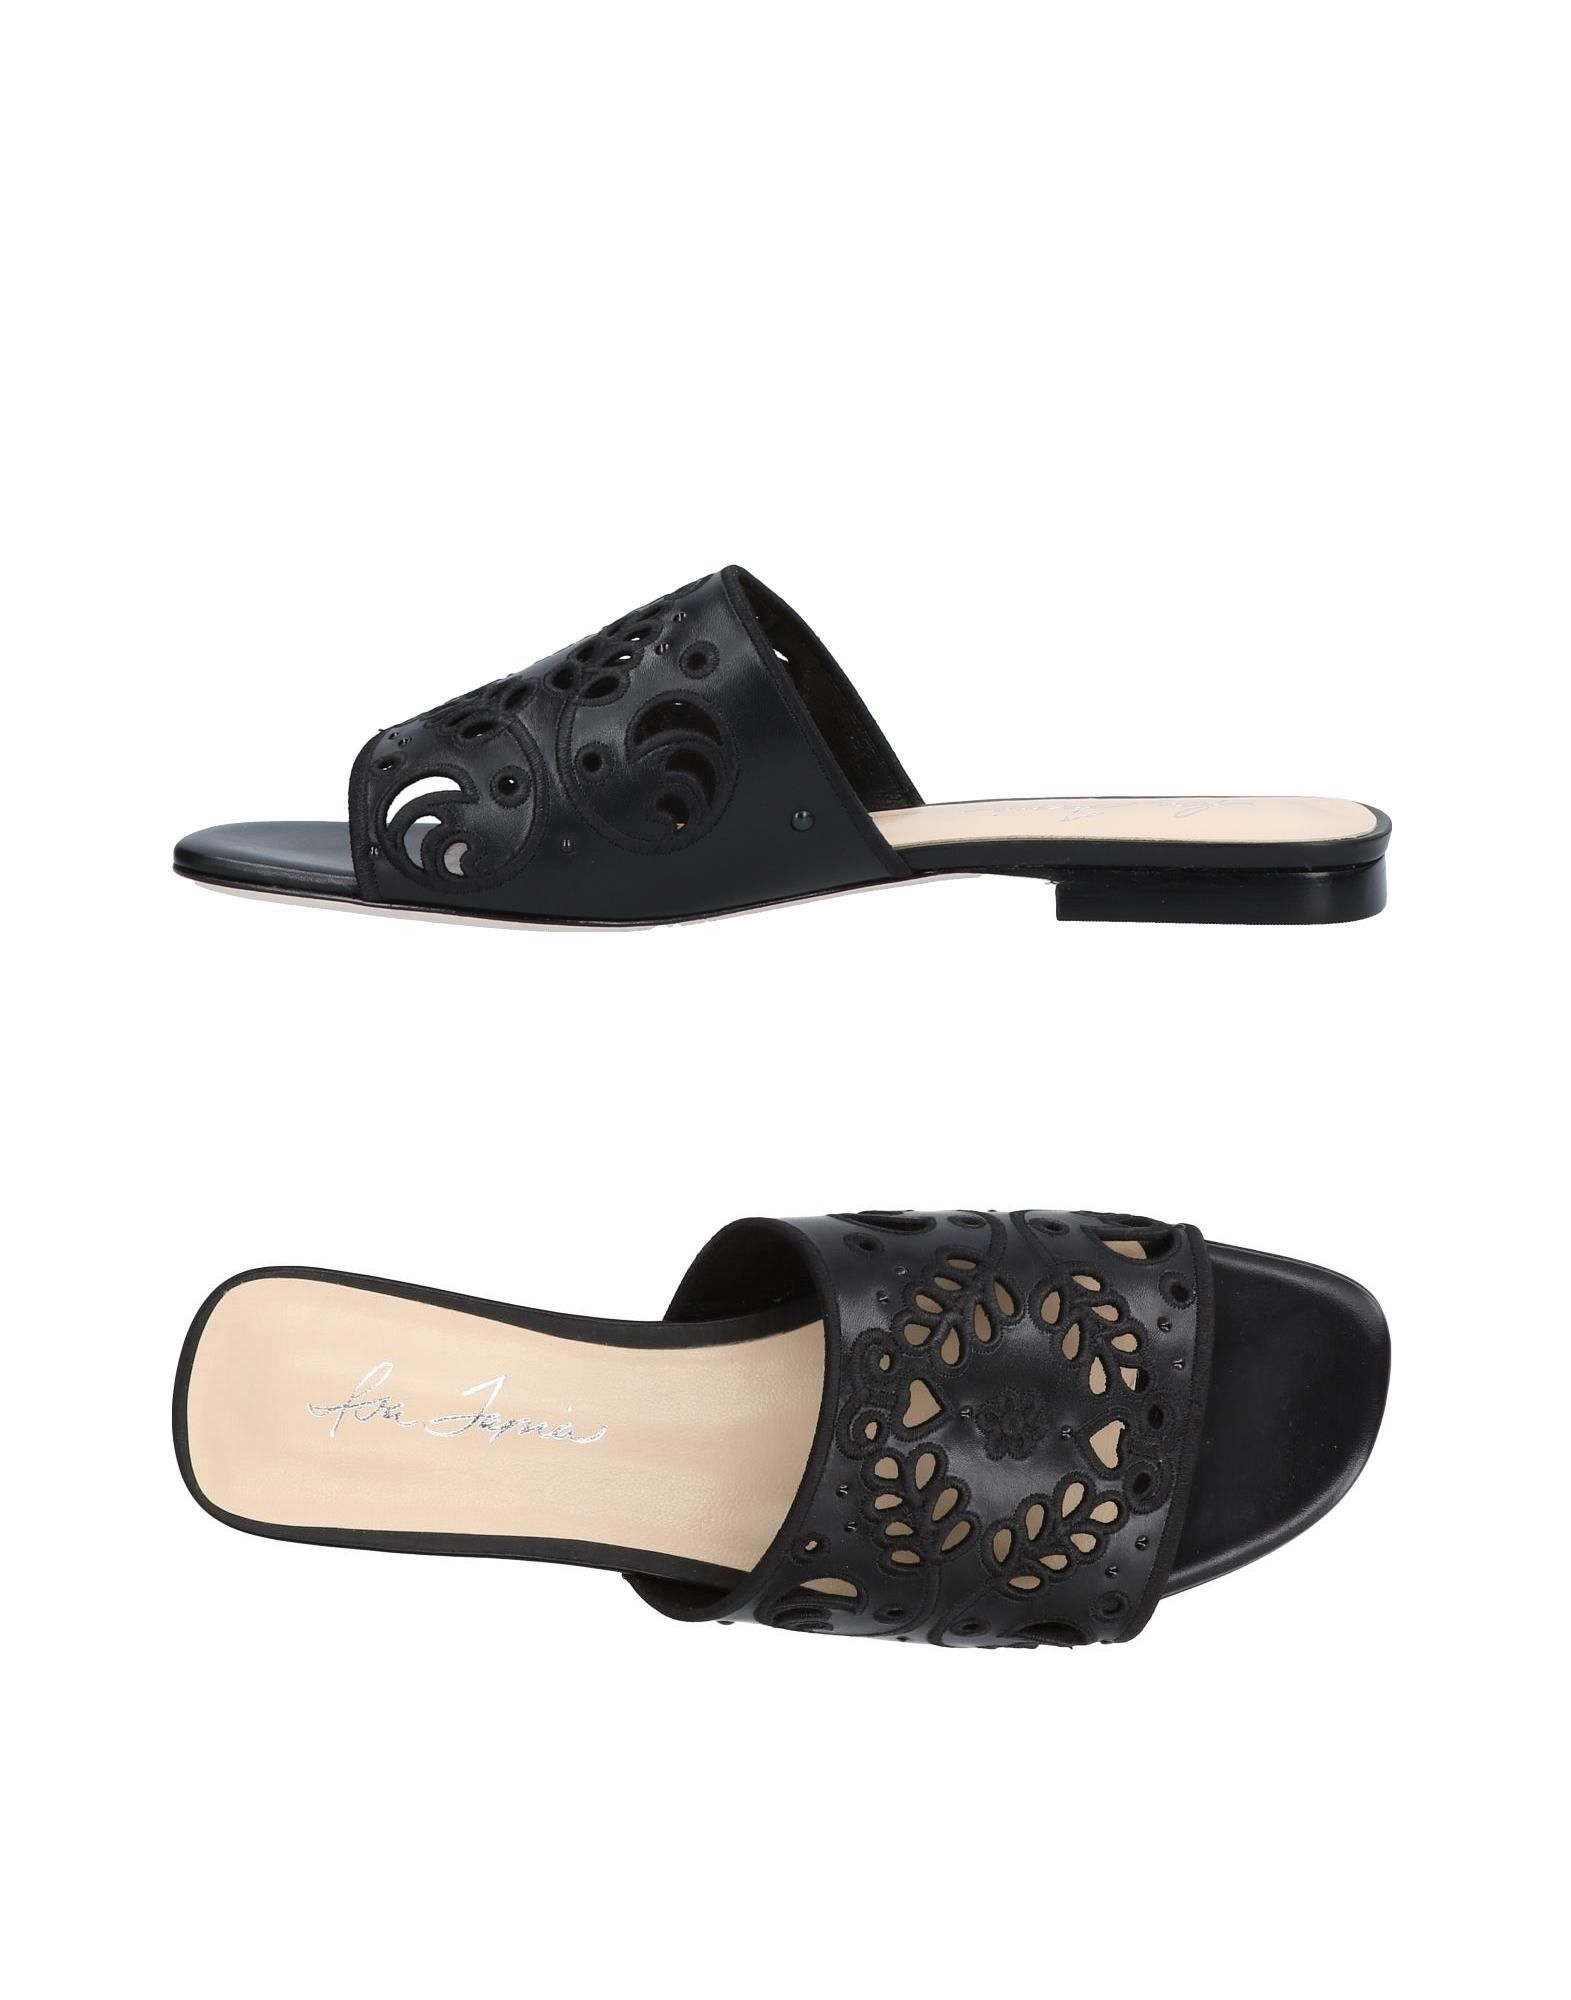 ISA TAPIA Sandals in Black